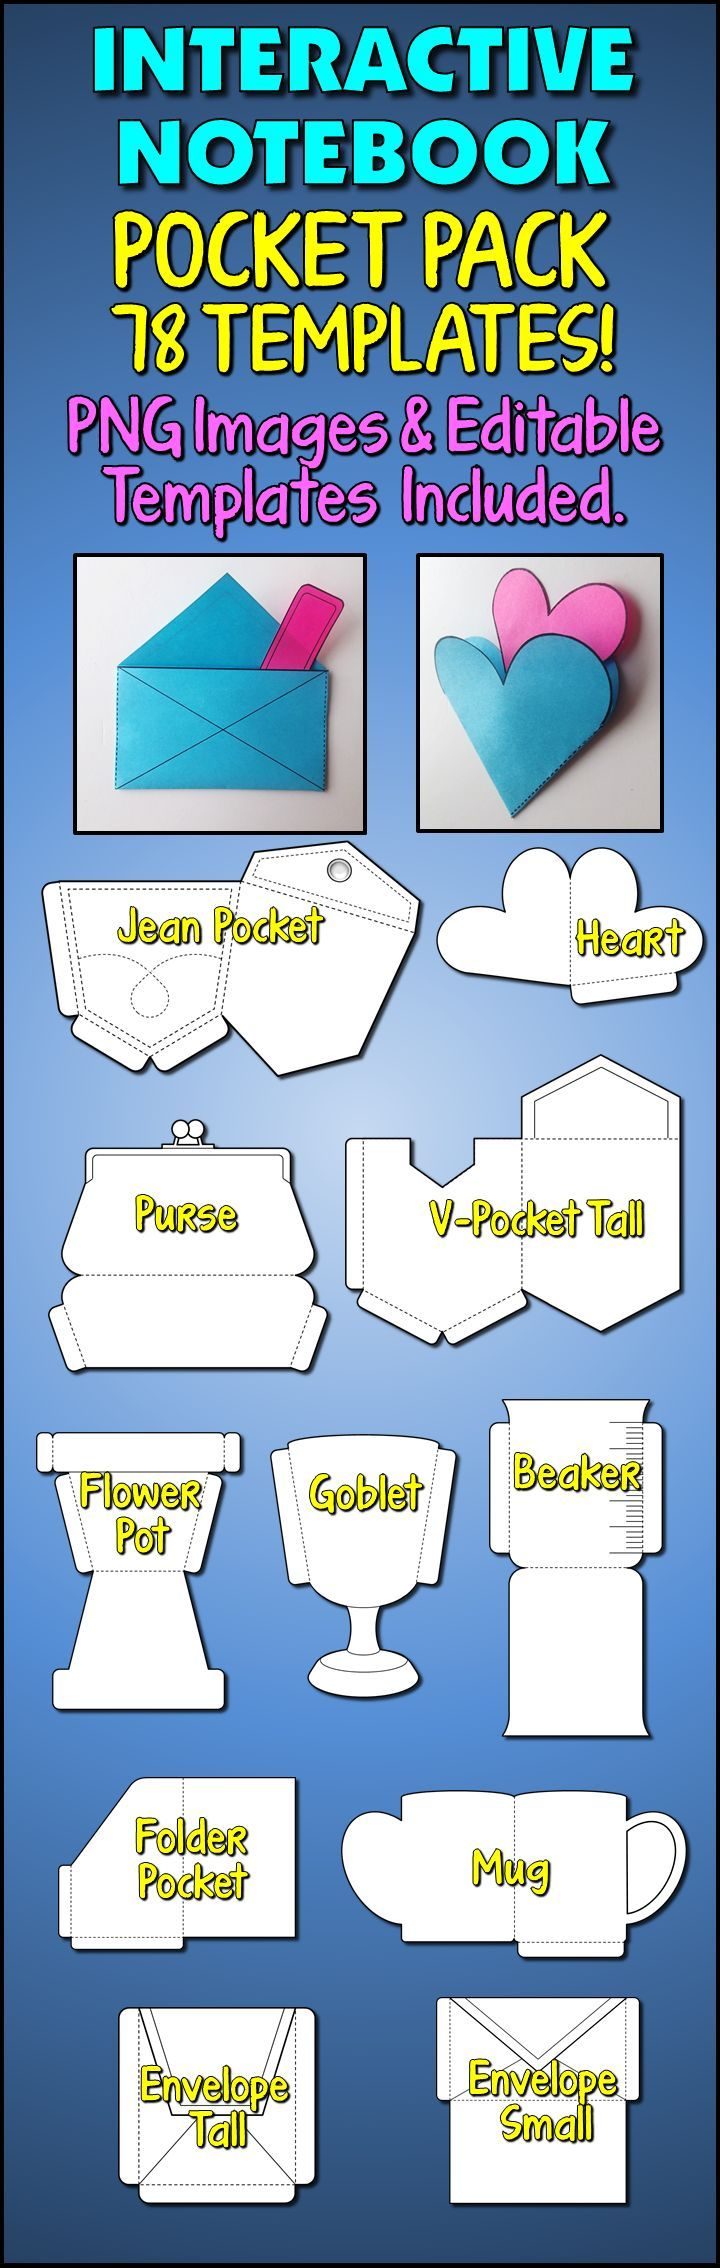 These 78 Blank Pocket Templates will make your interactive notebook more interesting and attractive. Pockets are of various shapes and sizes: envelopes, folders, V-pockets, slanted pockets as well as fun shapes (beaker, mug, heart, flower pot, purse, jean pocket). As a bonus I have created 52 Inserts for you to mix and match with your pockets. Some have been designed for certain pockets. E.g. Key